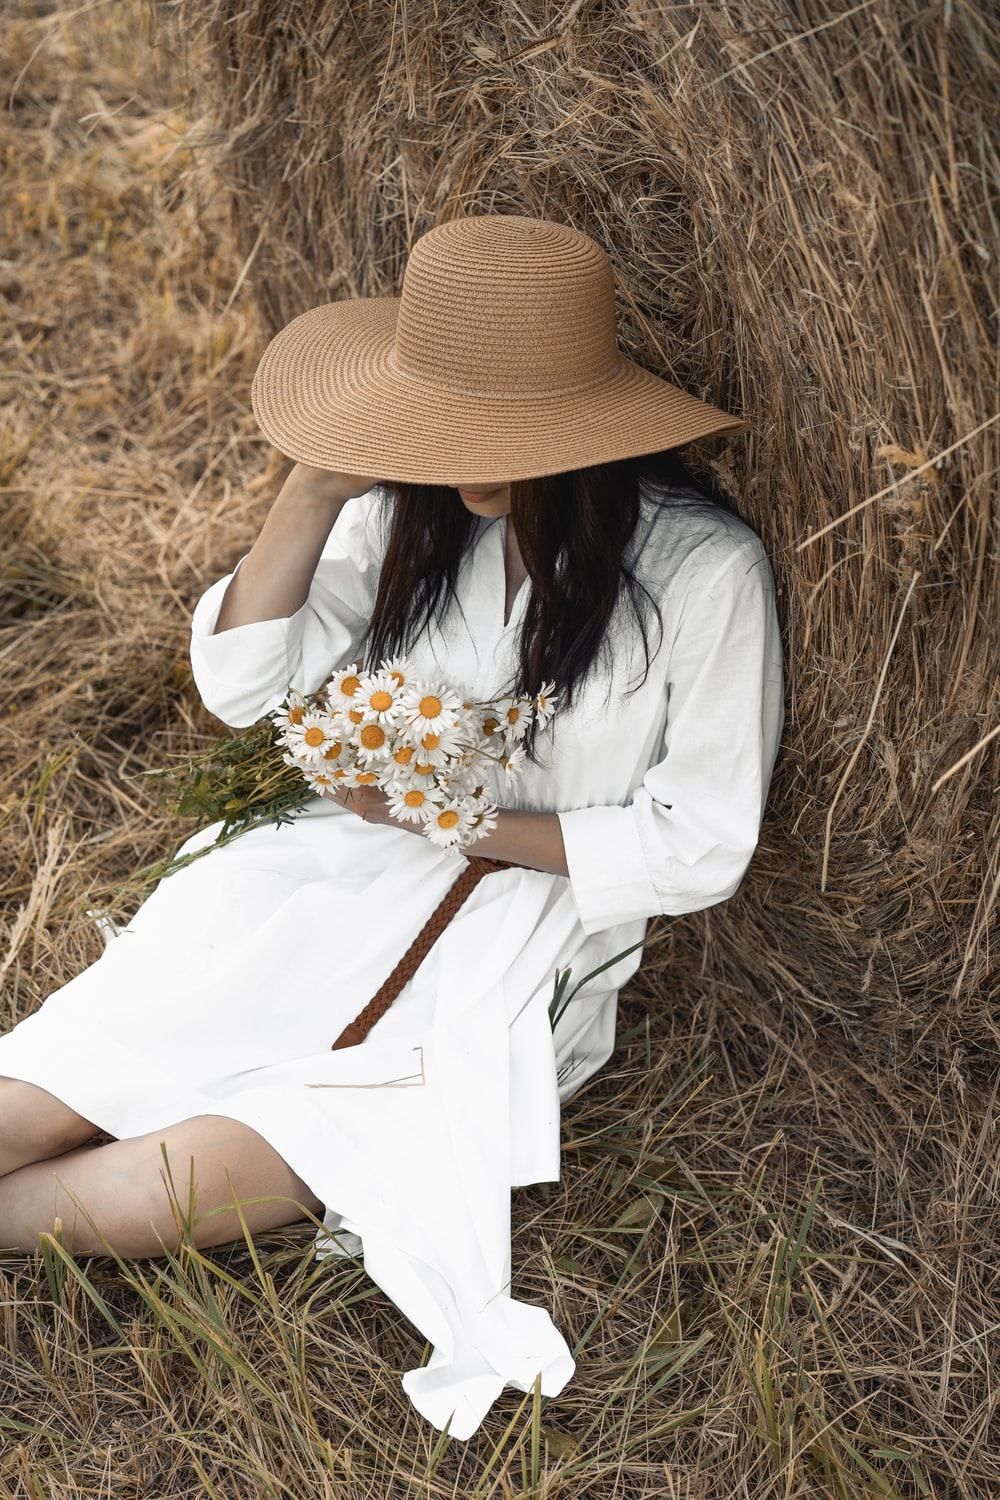 woman in white long sleeve shirt and brown hat holding white and yellow flowers